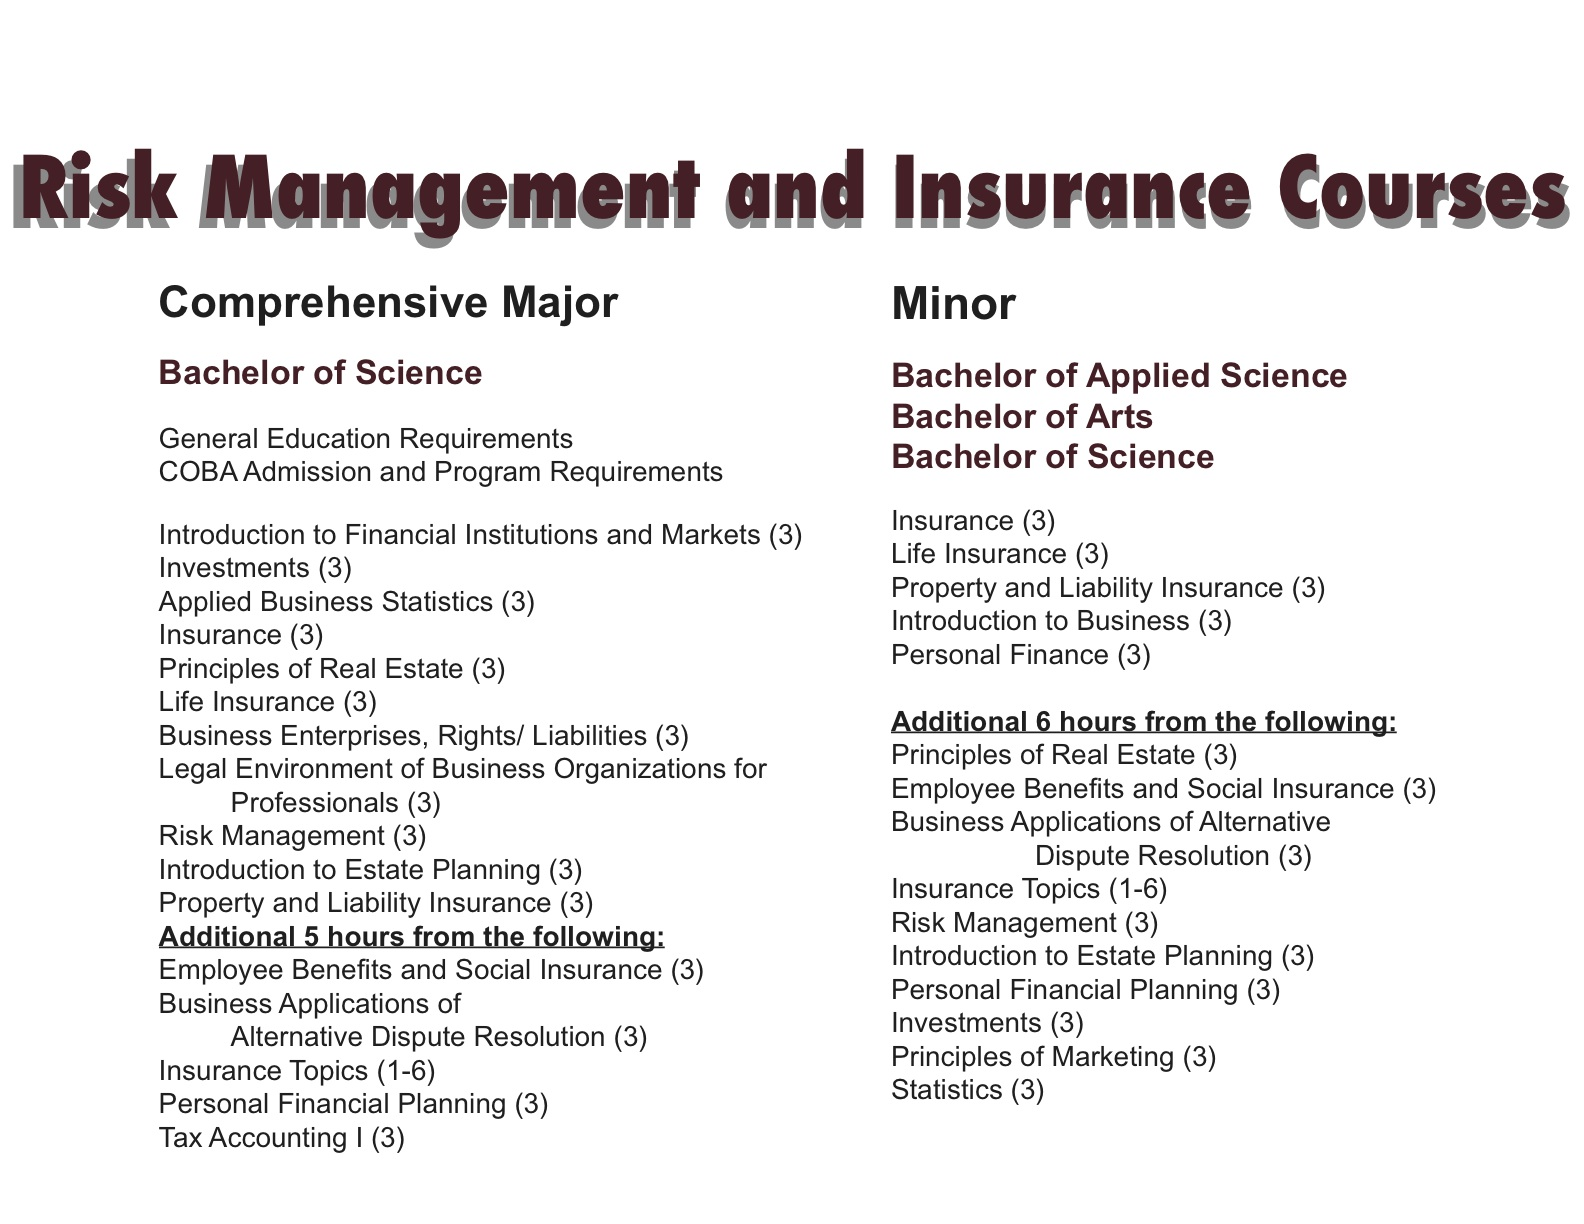 Risk Management and Insurance subjects to study at college